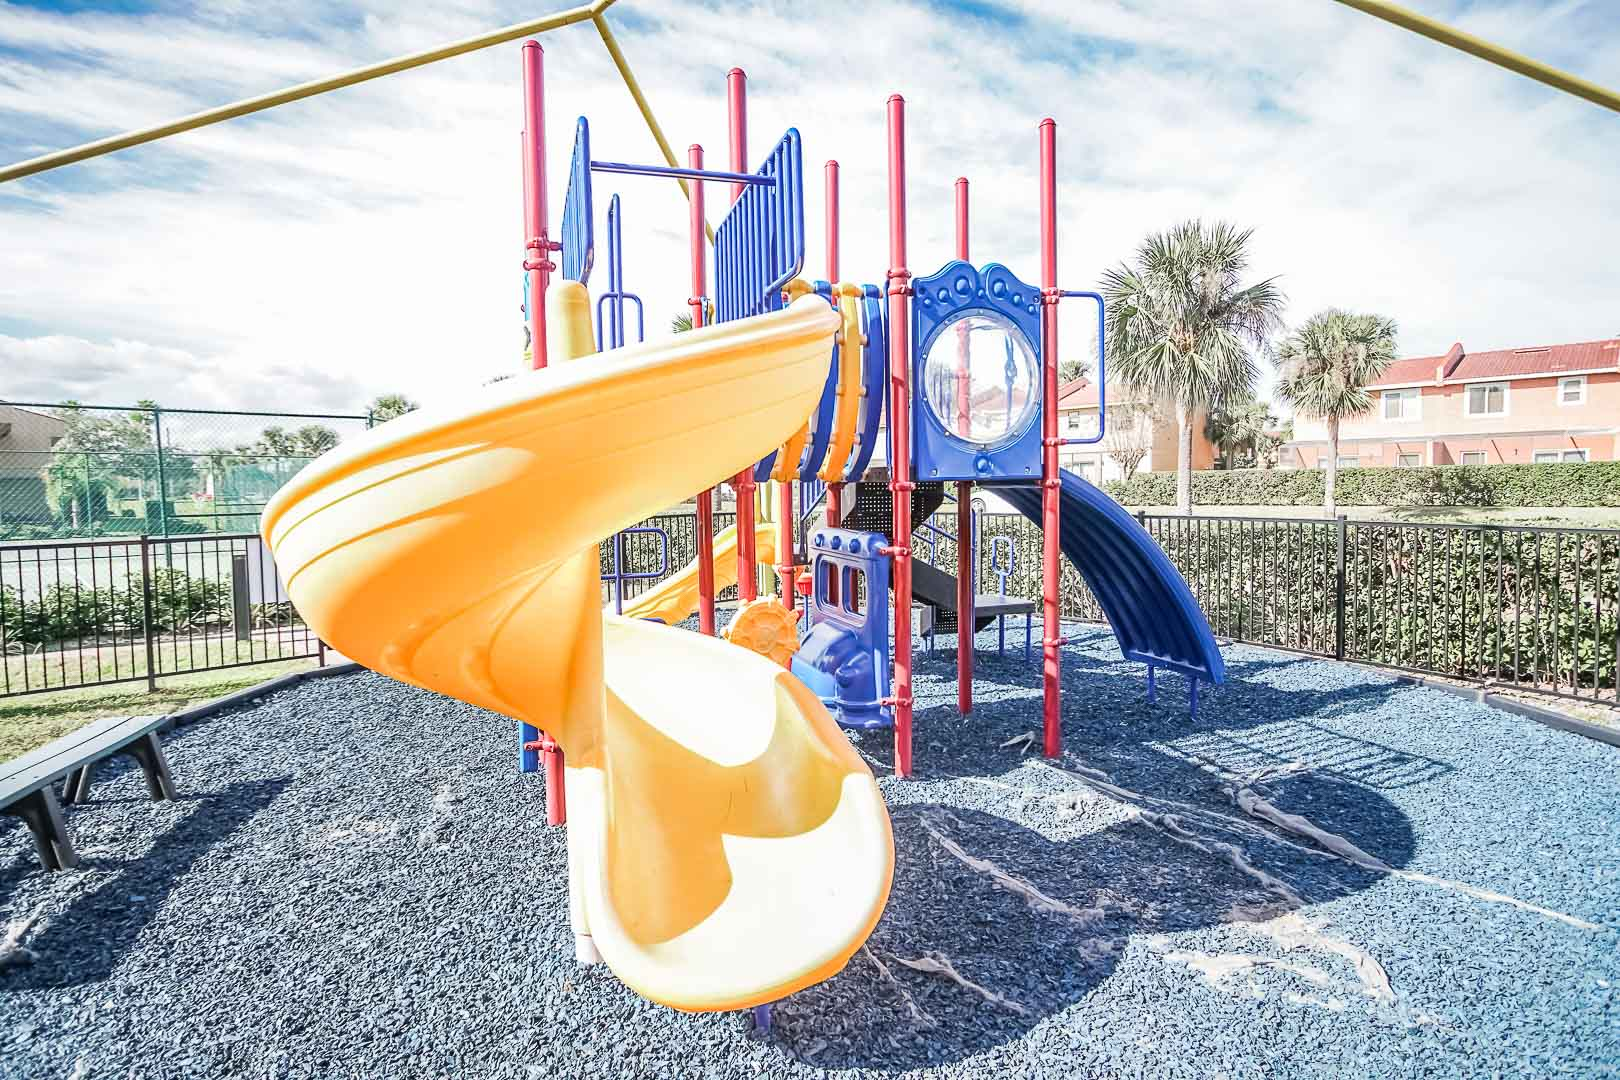 A colorful playground at VRI's Fantasy World Resort in Florida.